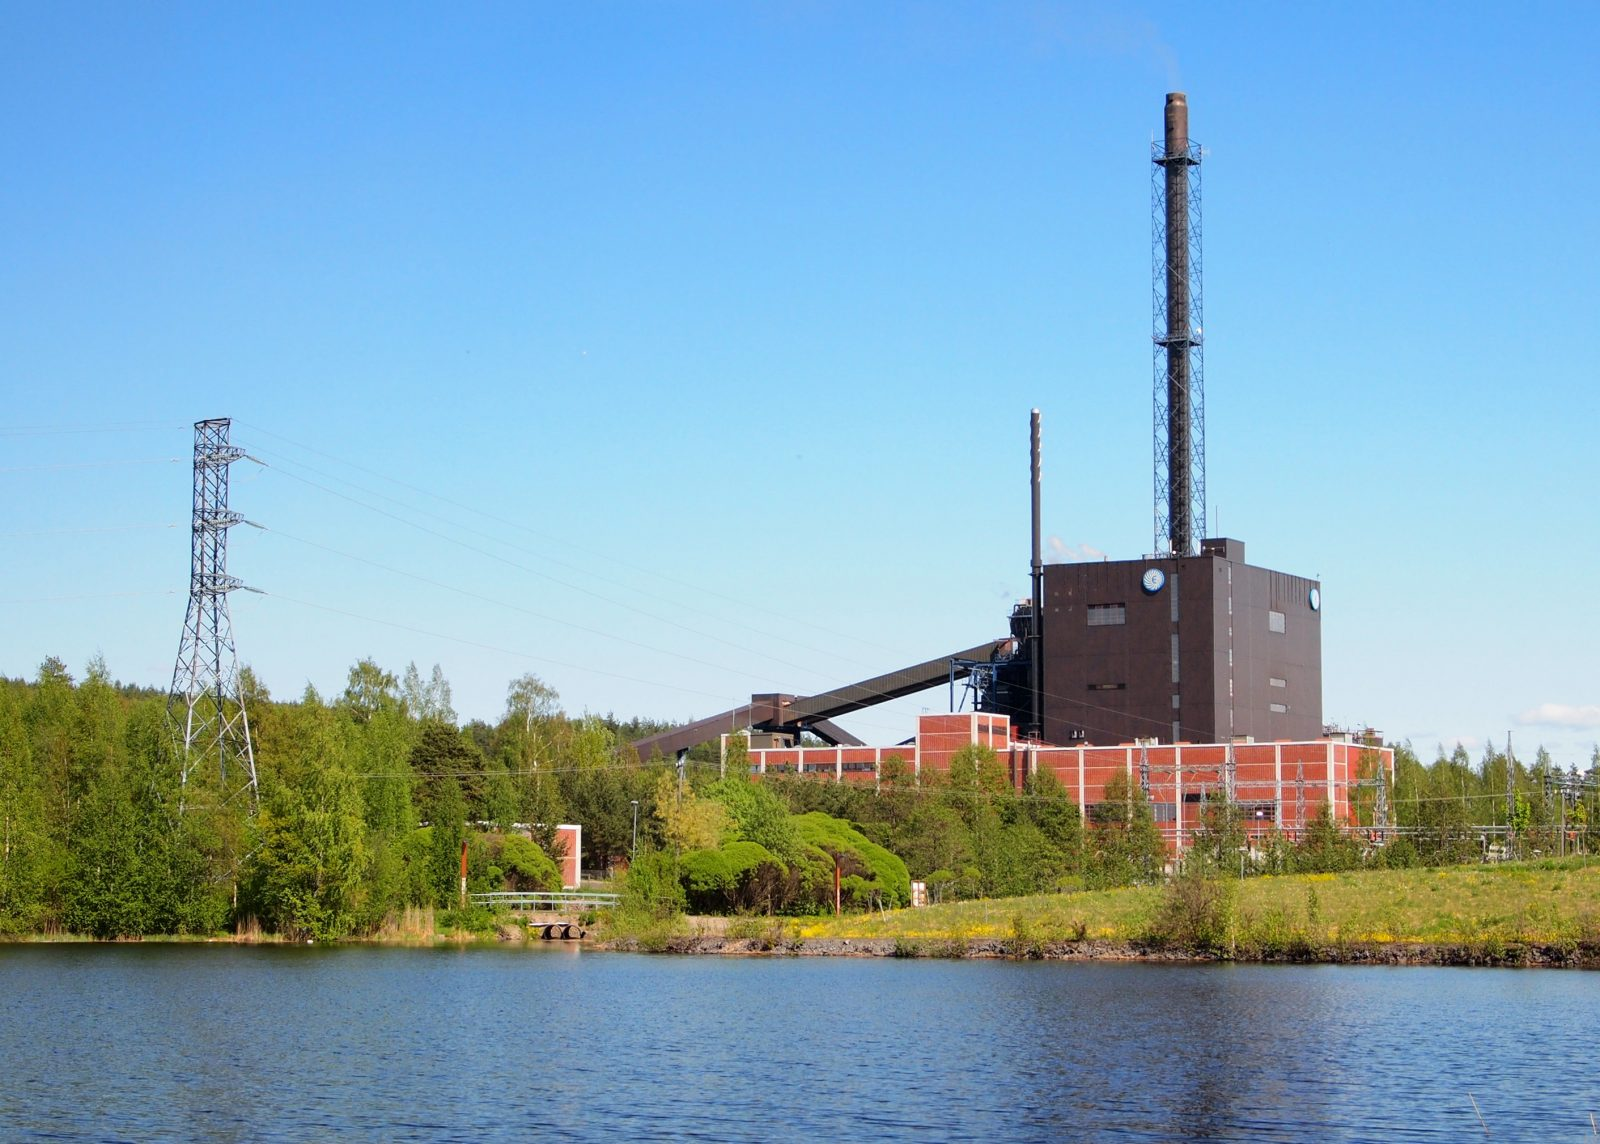 CC-BY-SA Tiia Monto. https://commons.wikimedia.org/wiki/File:Rauhalahti_Power_Plant.jpg